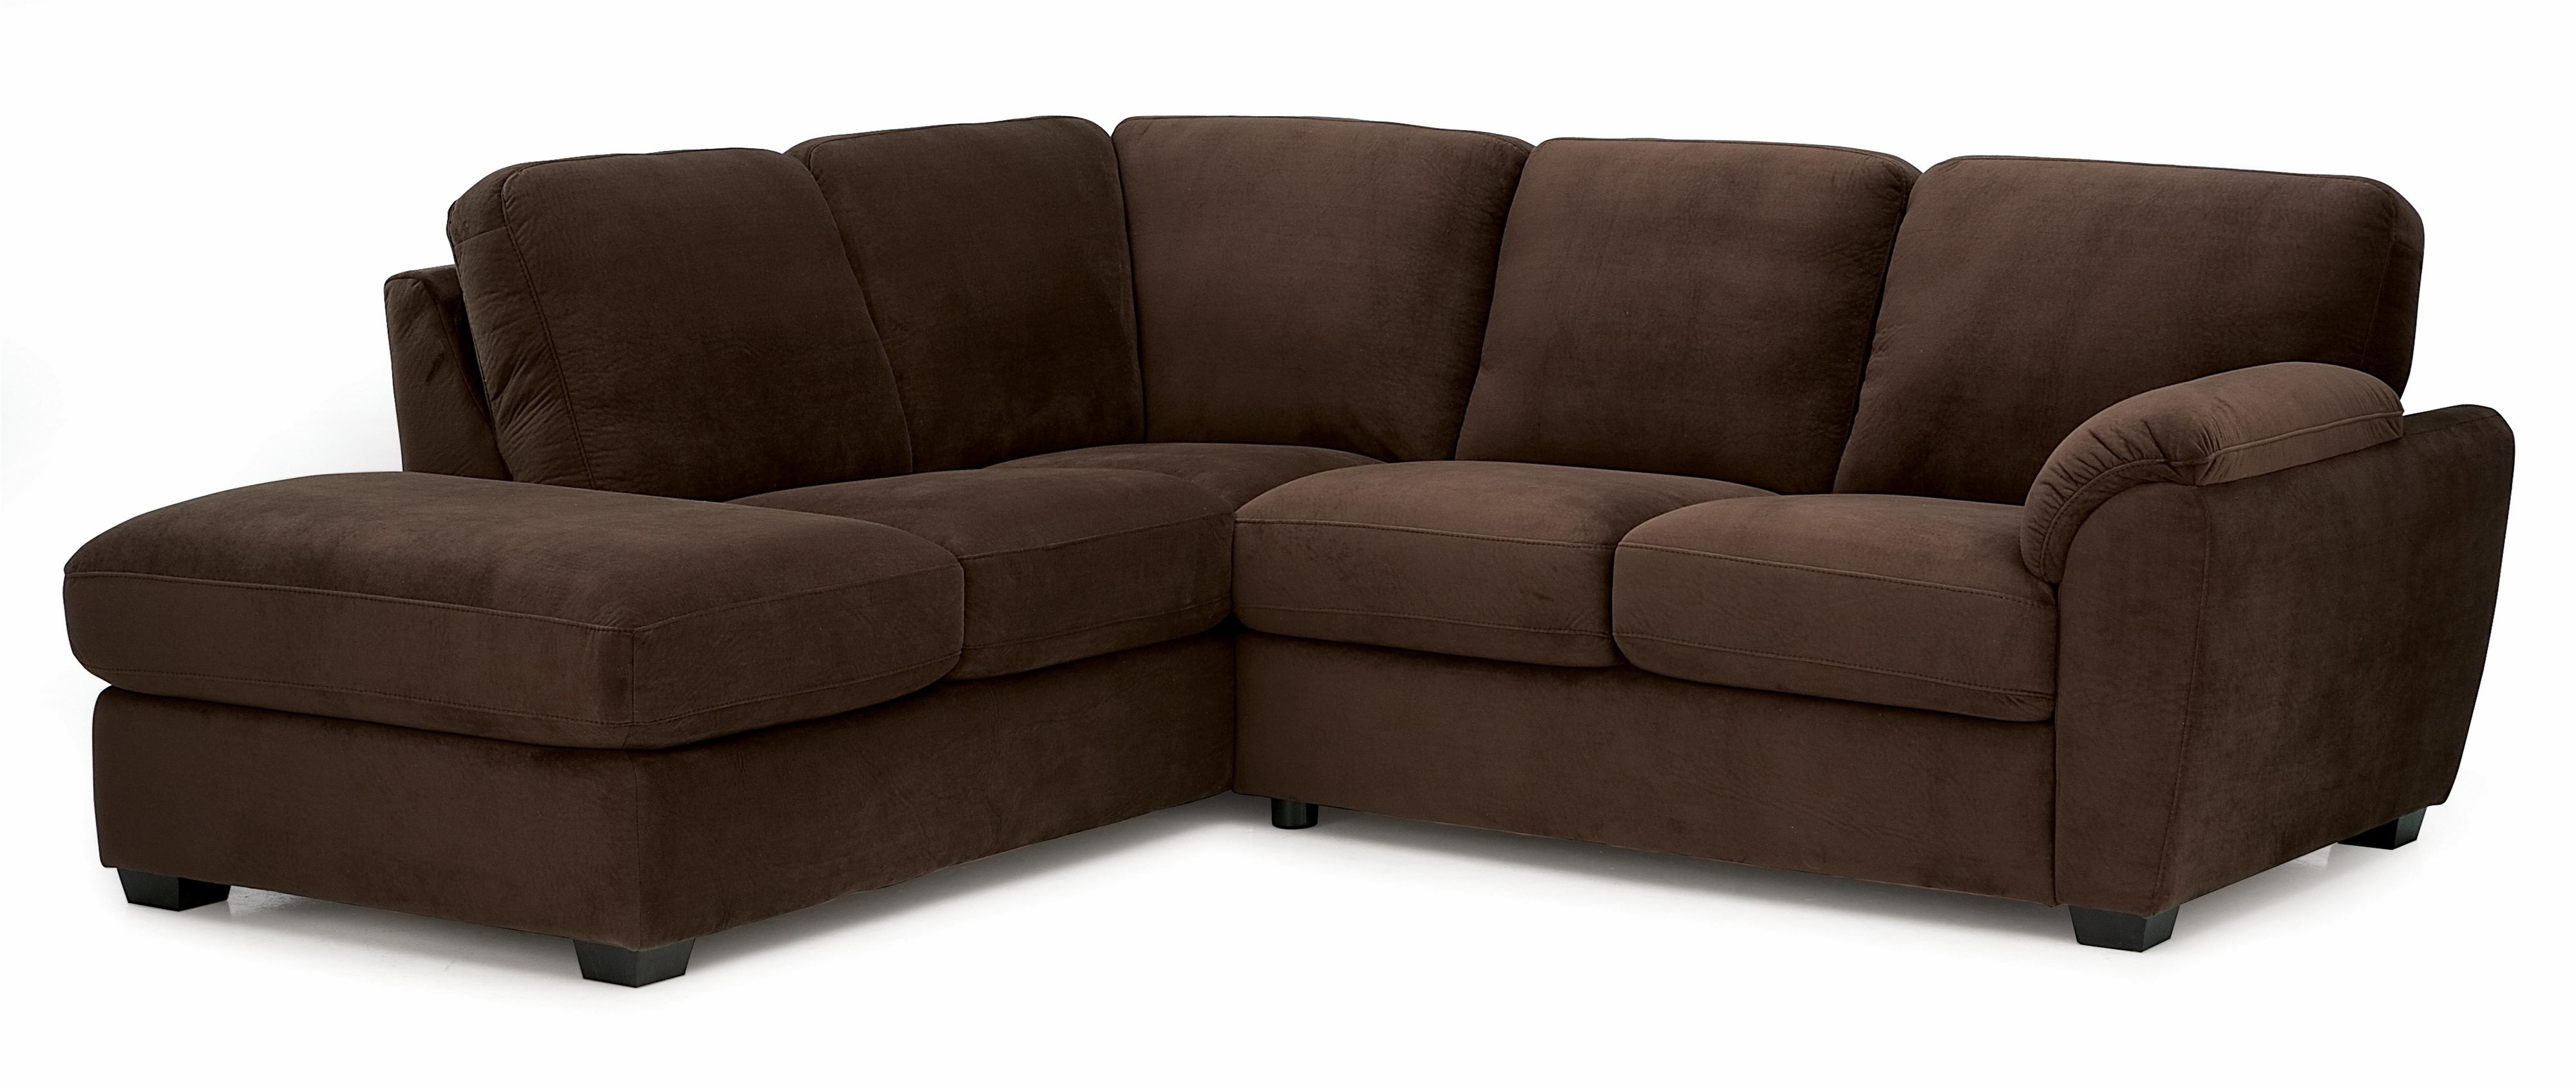 Palliser Lanza Casual Sectional Sofa With Rhf Corner Chaise – Ahfa Pertaining To Duluth Mn Sectional Sofas (Image 4 of 10)